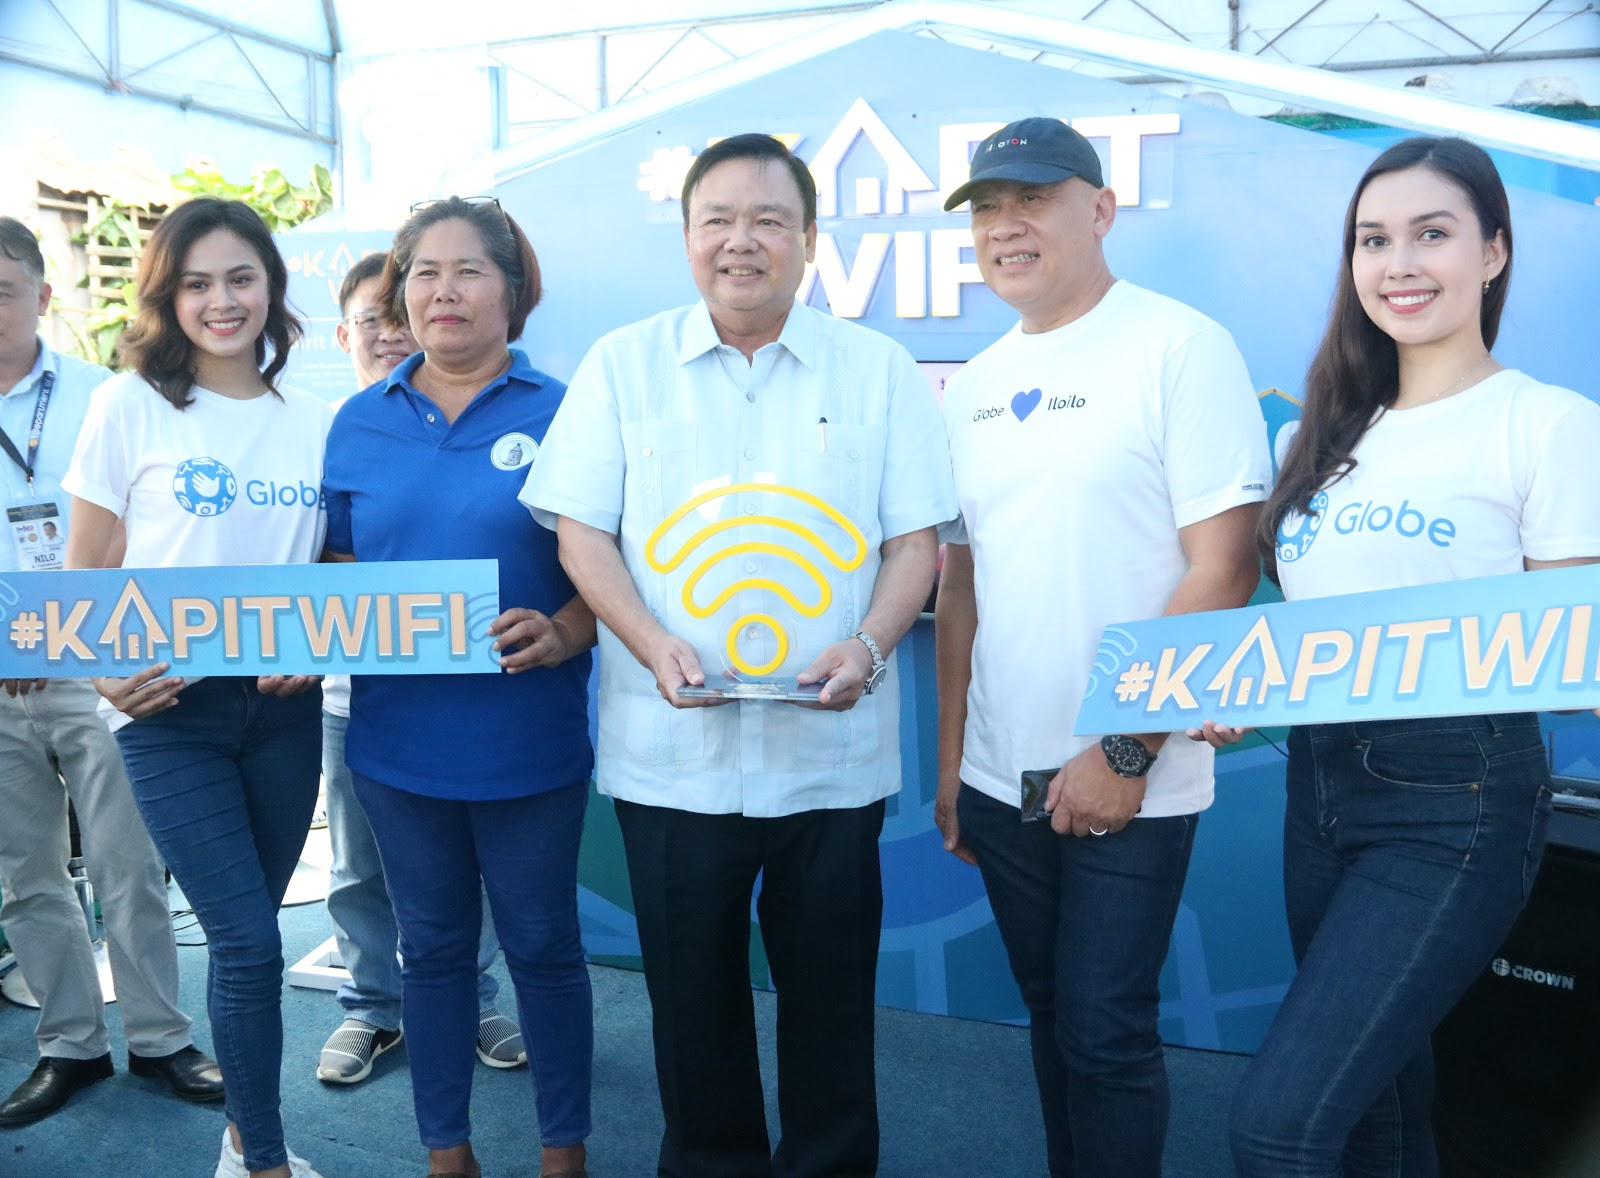 Globe launches Kapitwifi internet services in Lanit, Jaro, Iloilo City.